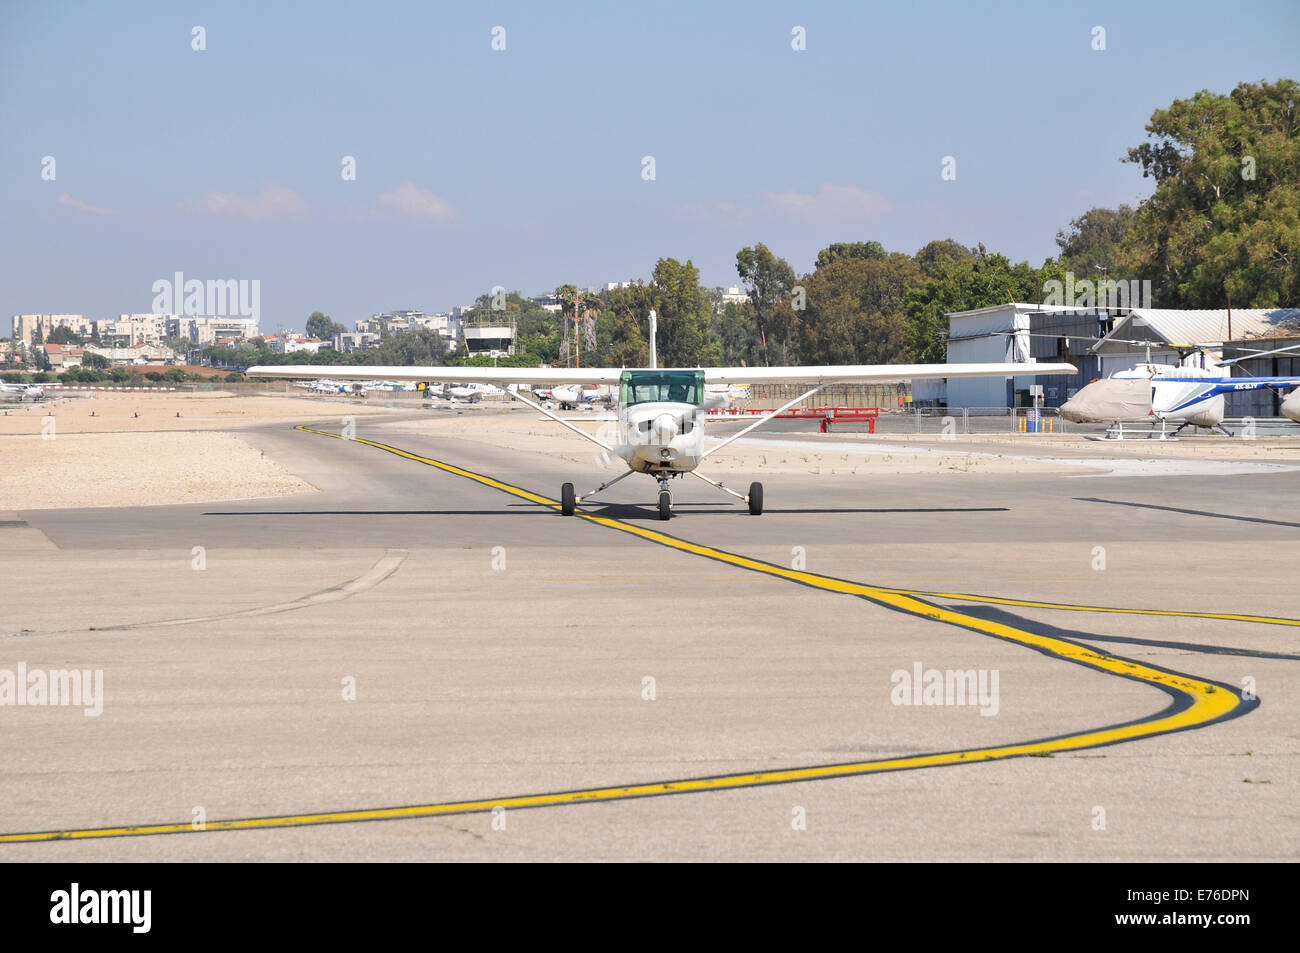 Cessna 152 single engine plane ready for takeoff - Stock Image